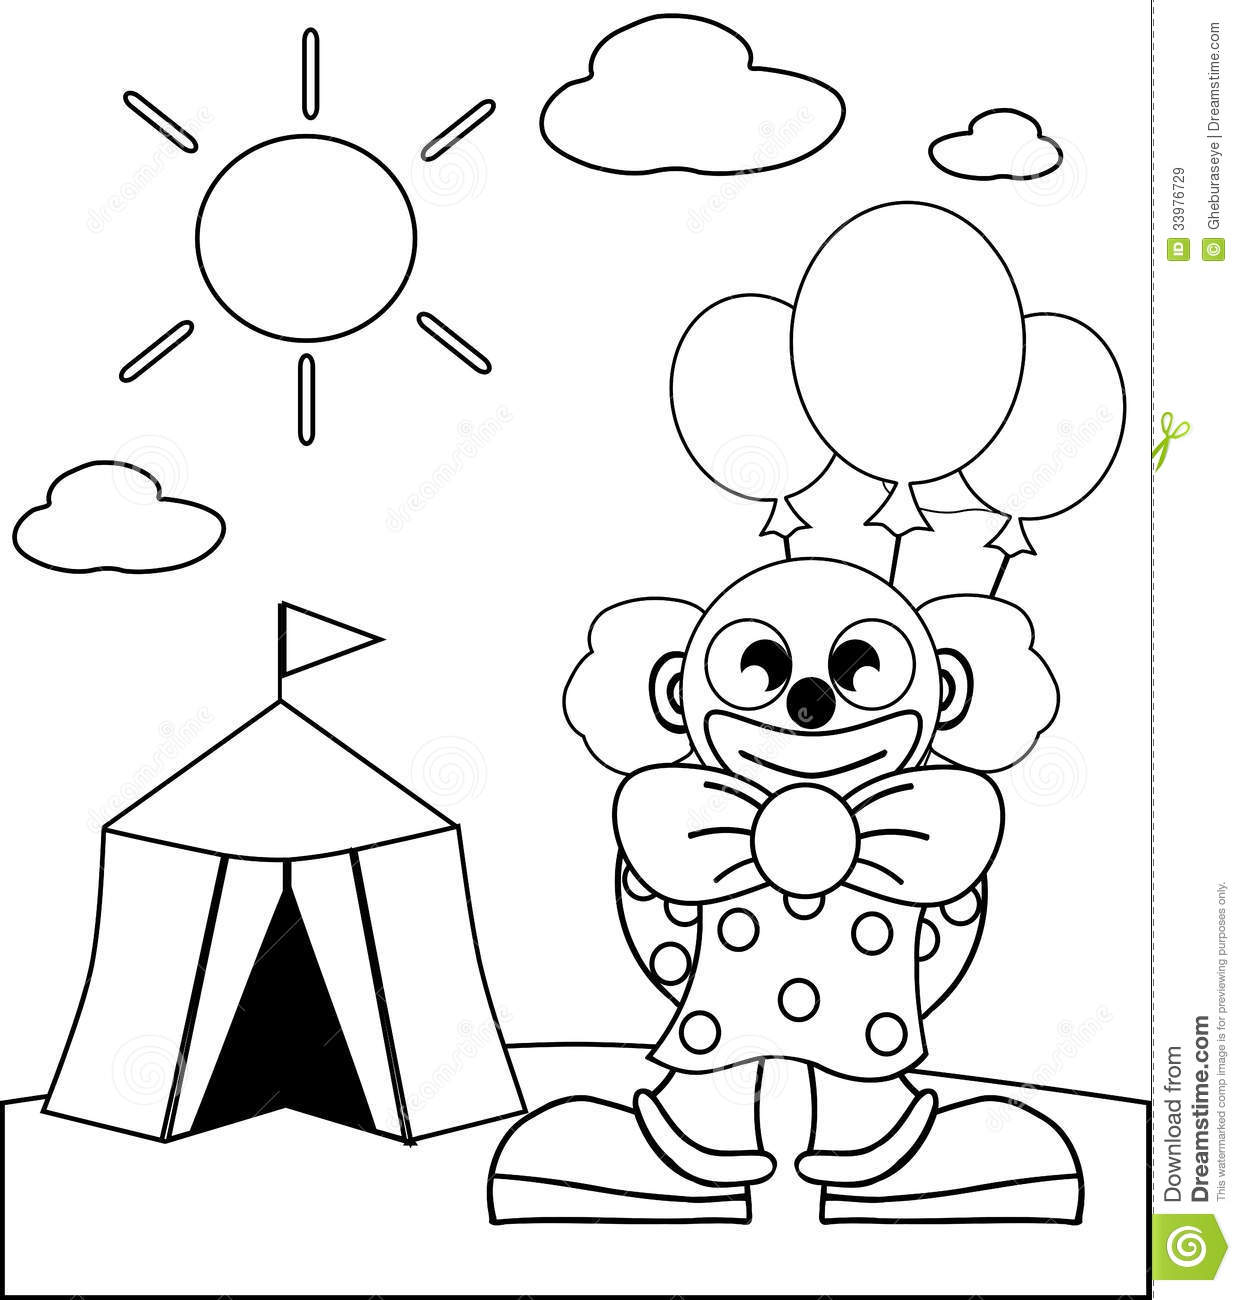 Coloring Clown Royalty Free Stock